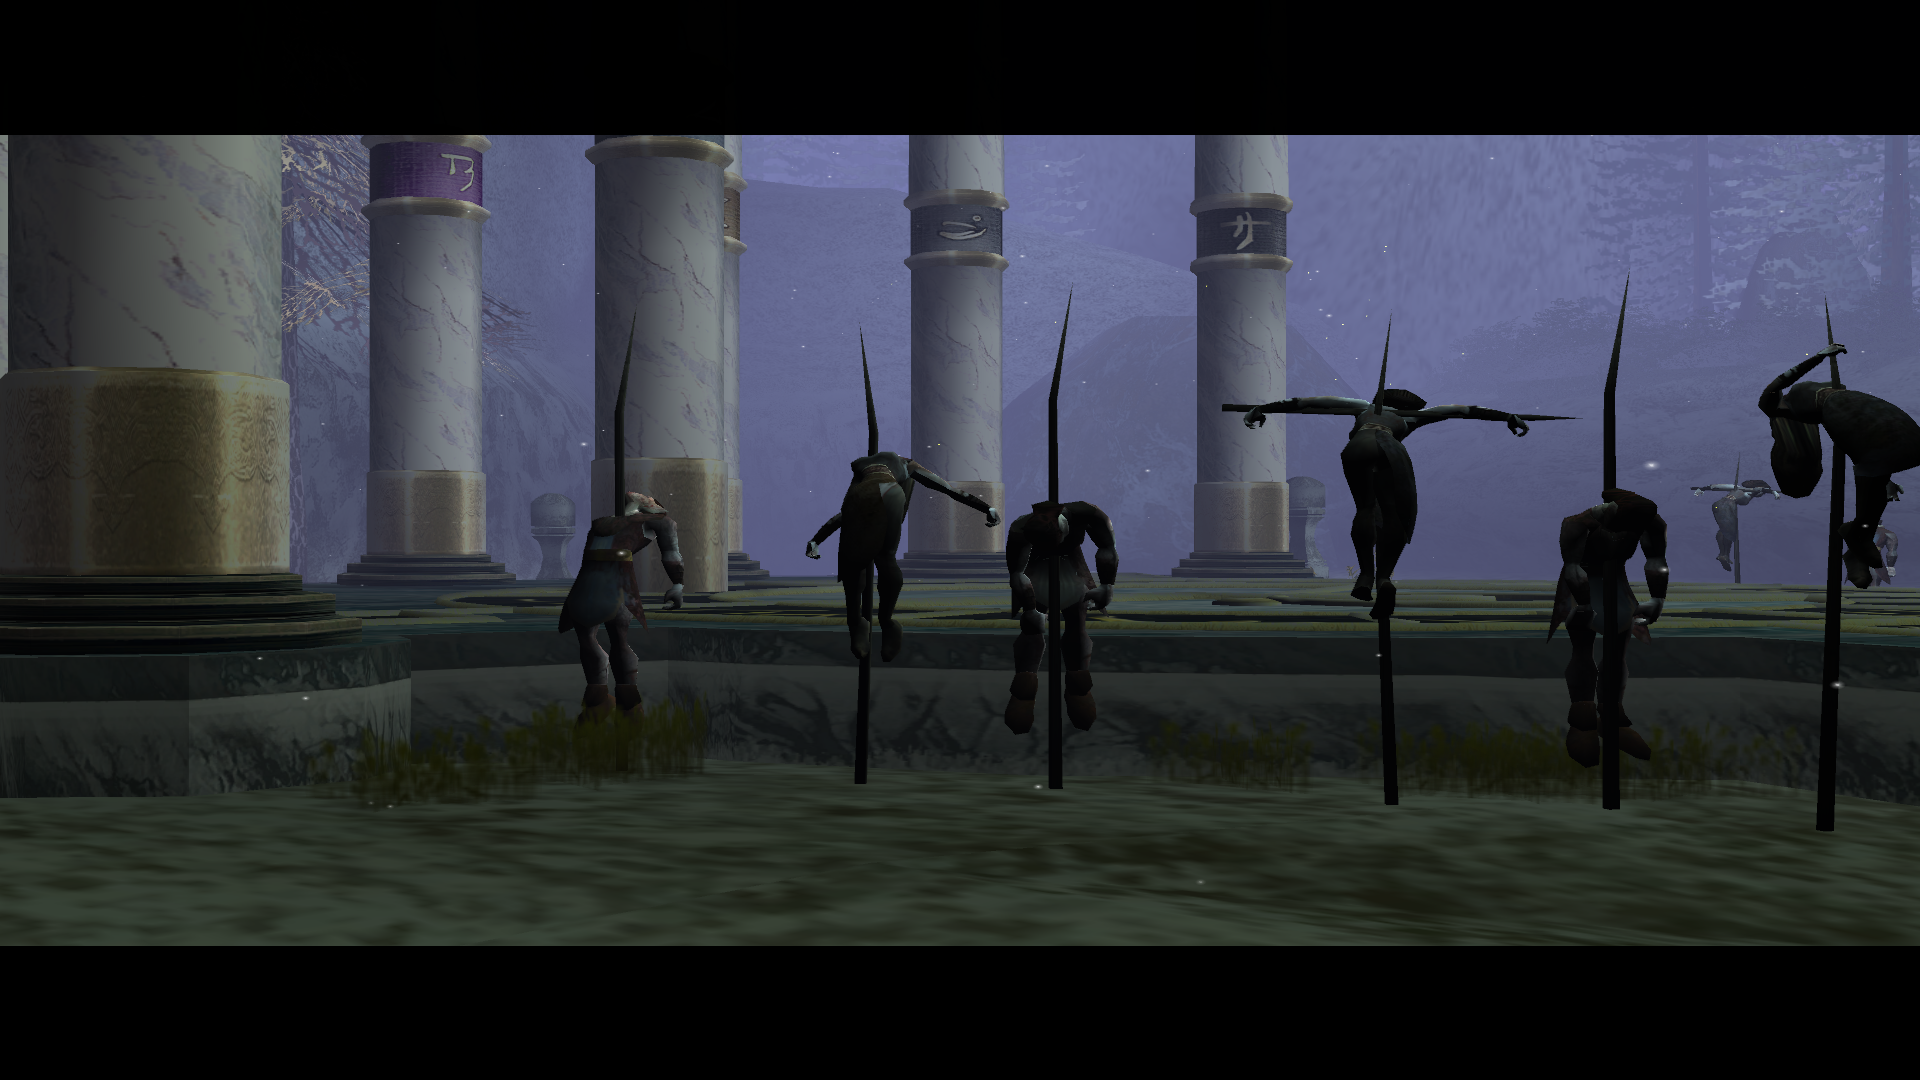 SR2--EraC-Cutscene-KillingFields-Alternate-Pillars-03.png